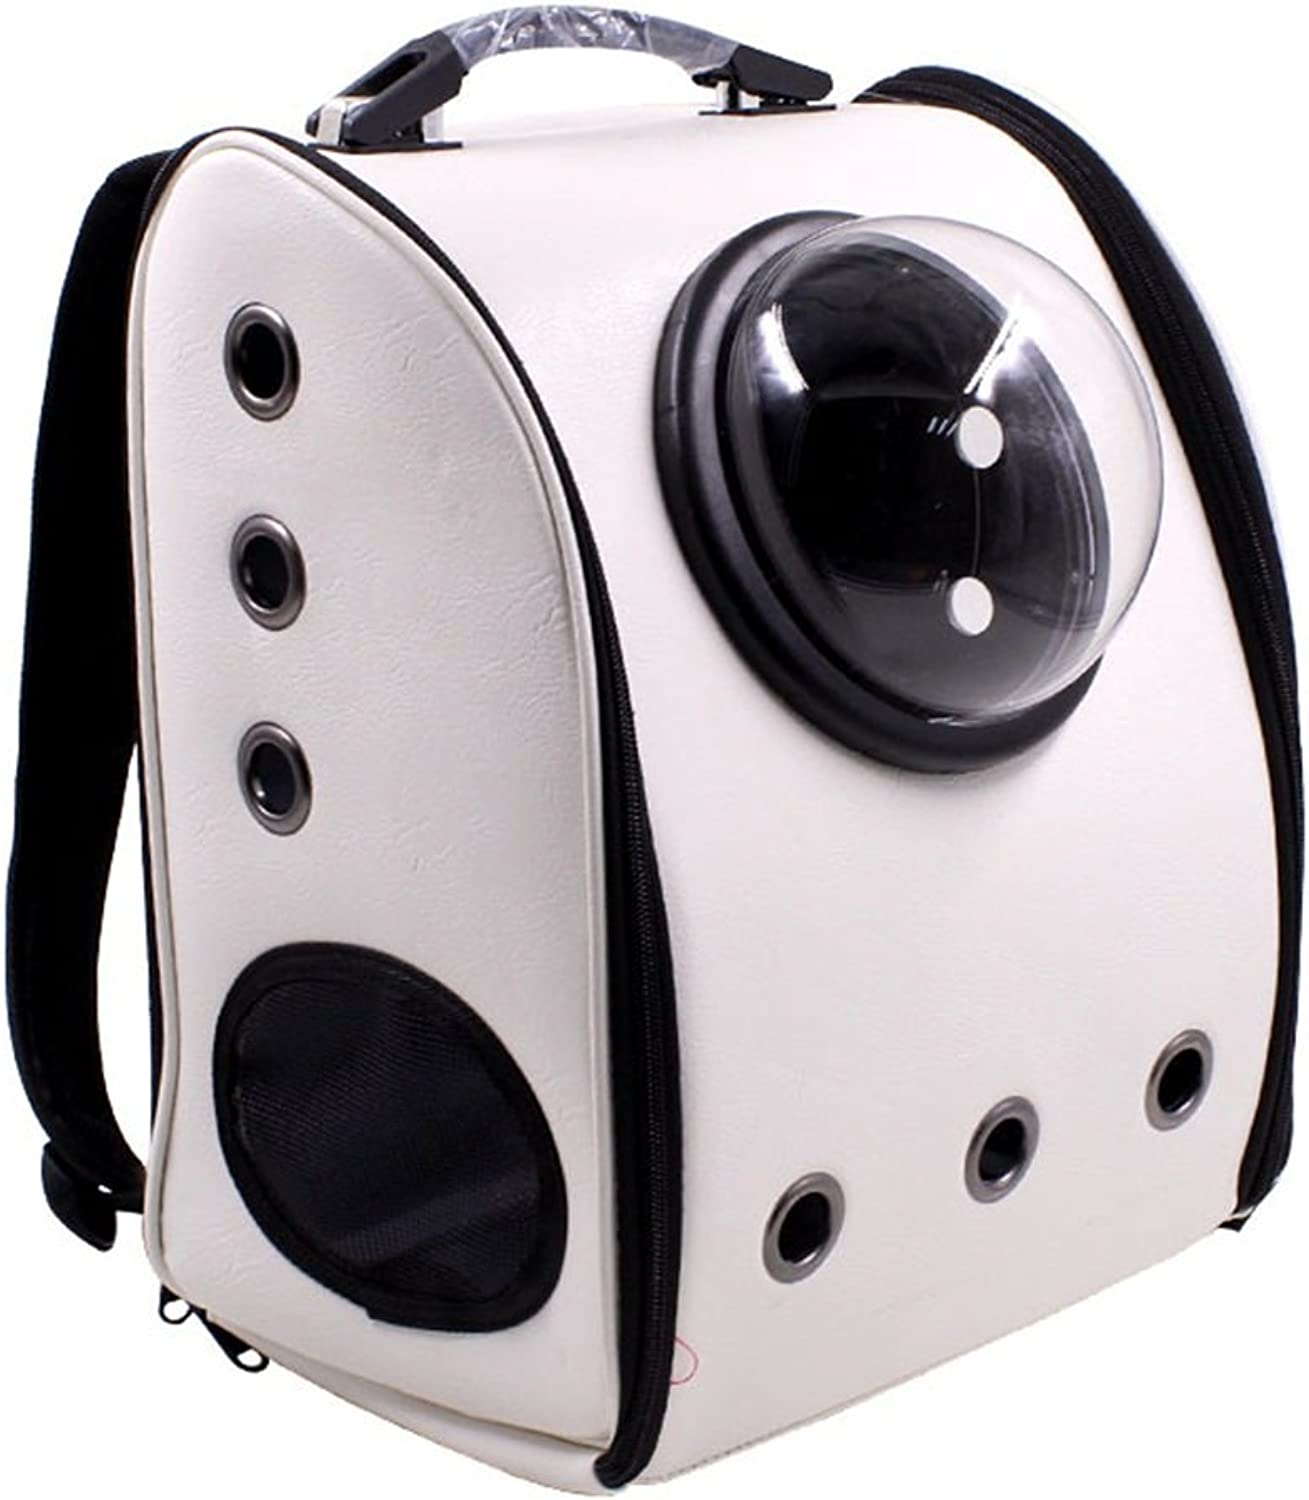 EXCLVEAP Small Animals Bag Pet Space Backpack Out Portable Breathable Cat Dog Cabin Pet Supplies A Variety Of colors Optional Dog Carrier Backpack (color   White)